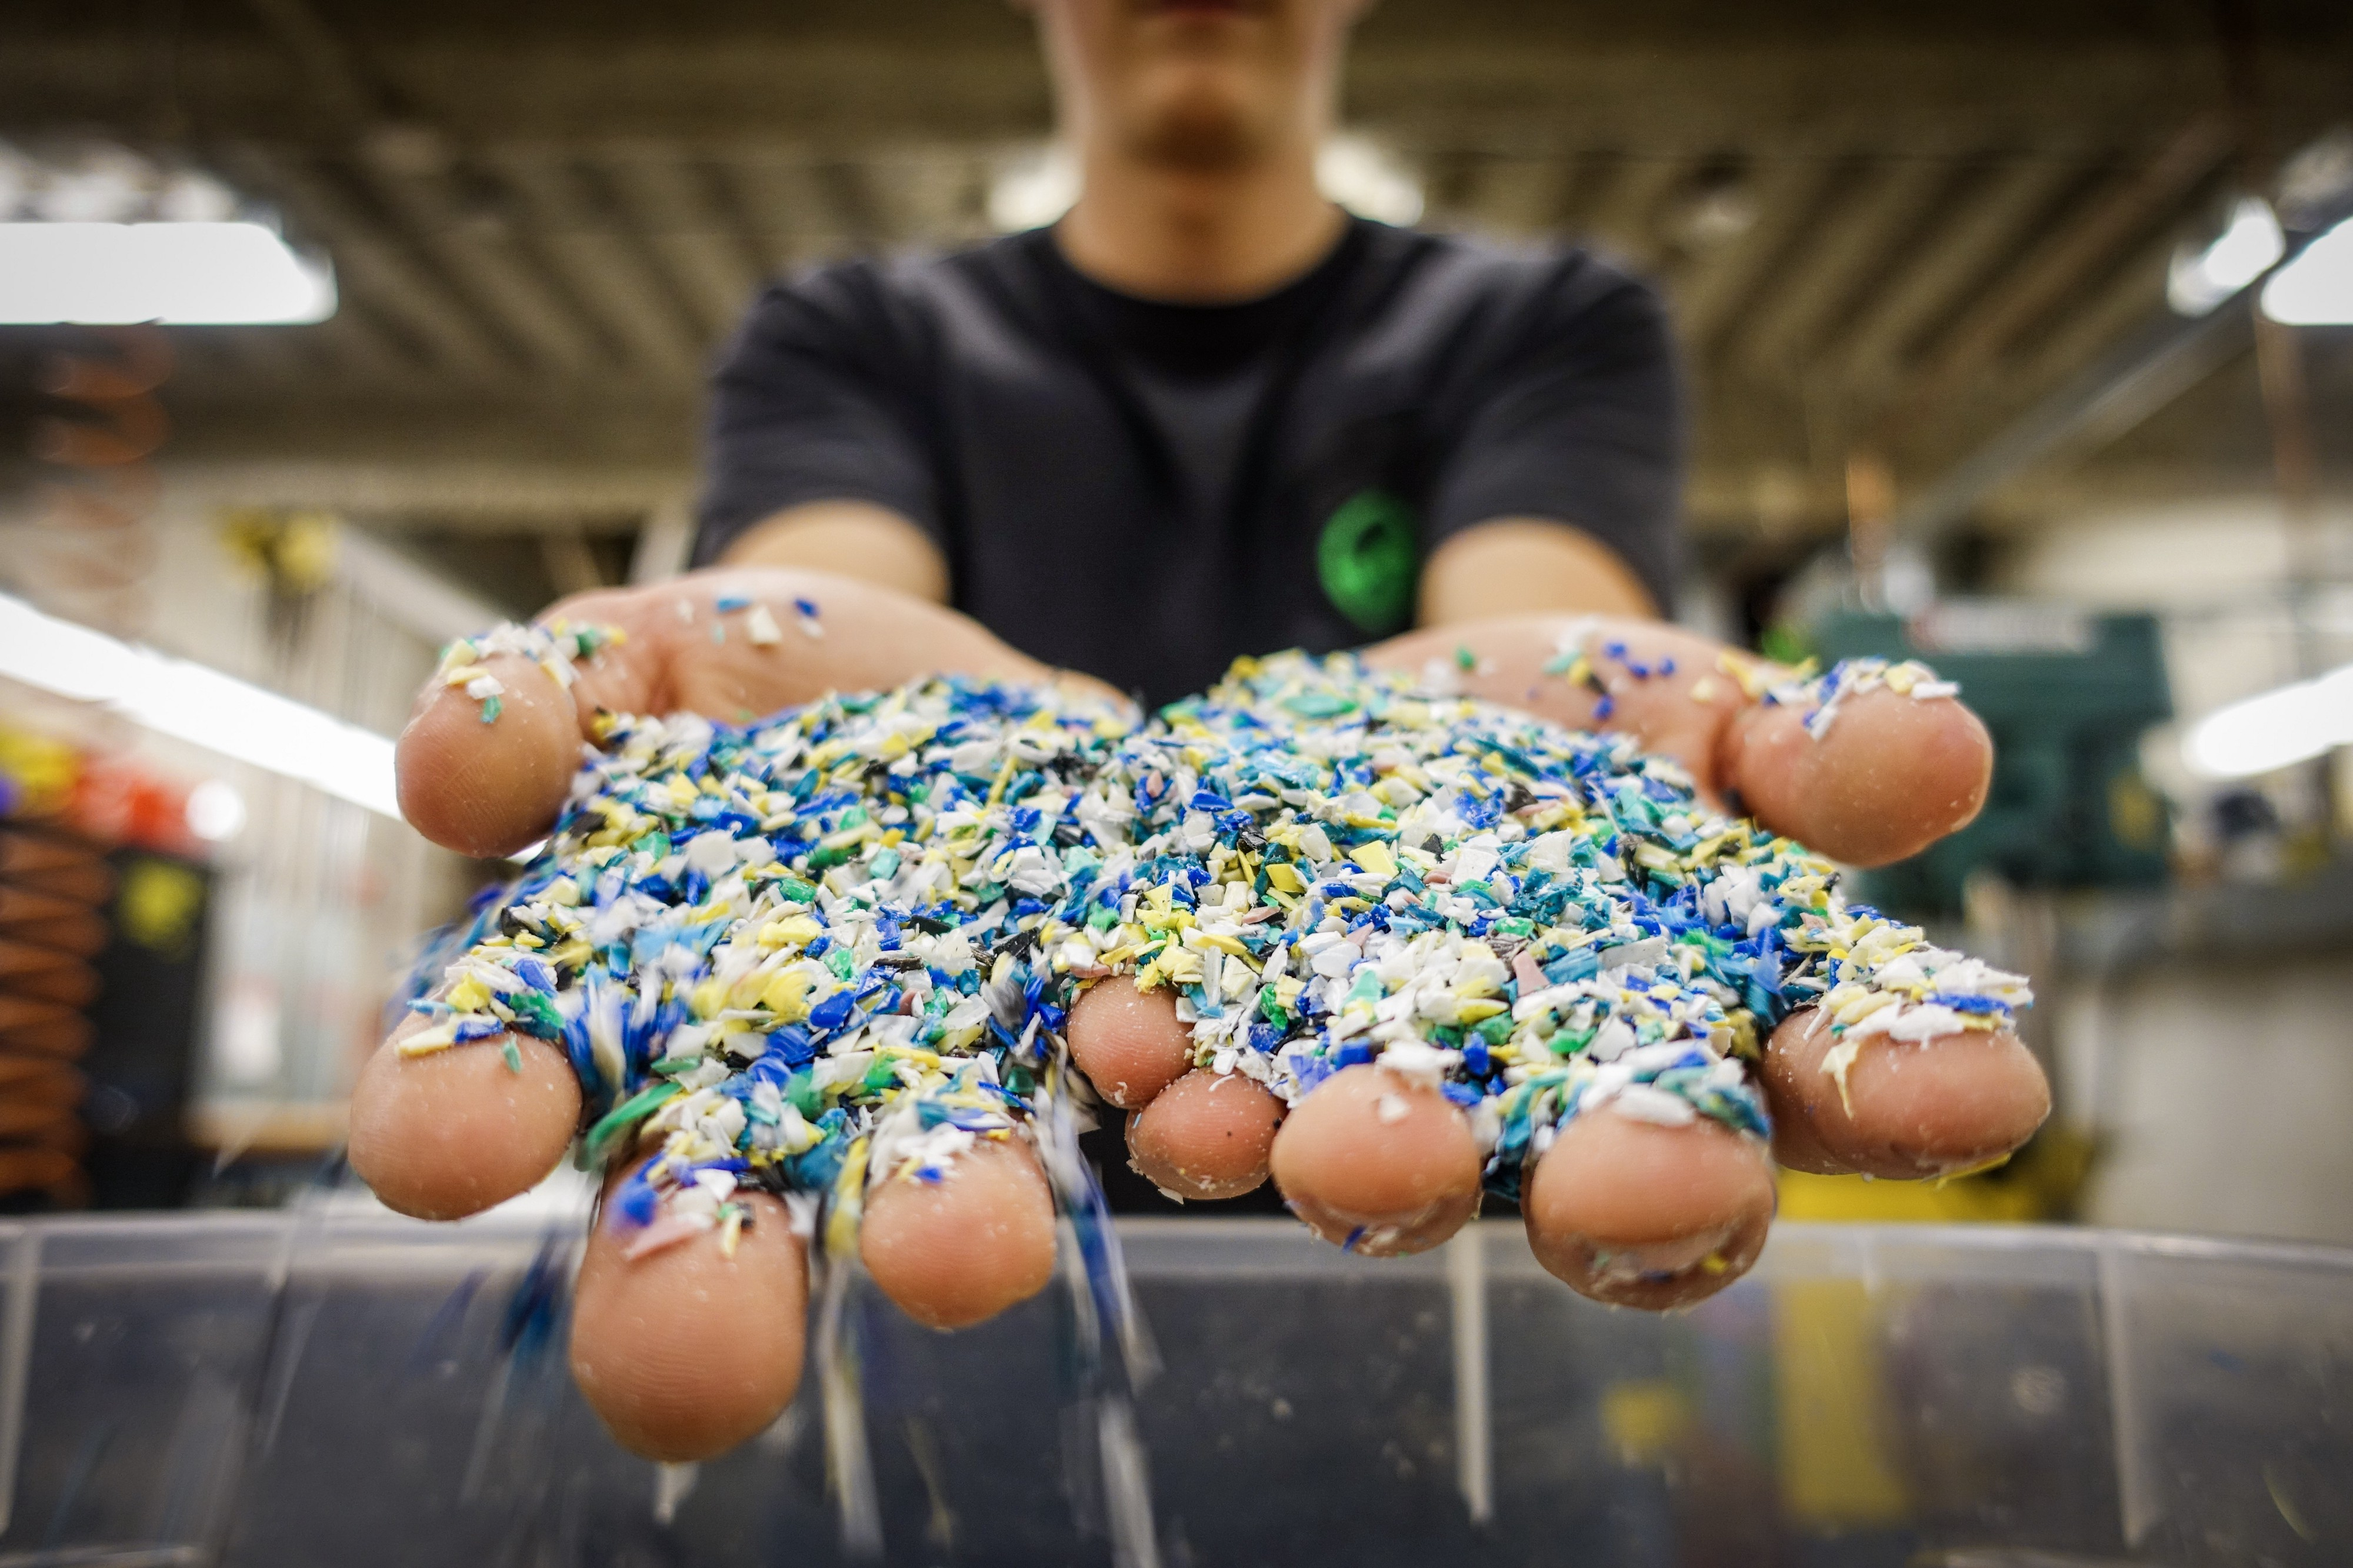 Ground up plastics in the hands of a WWU student